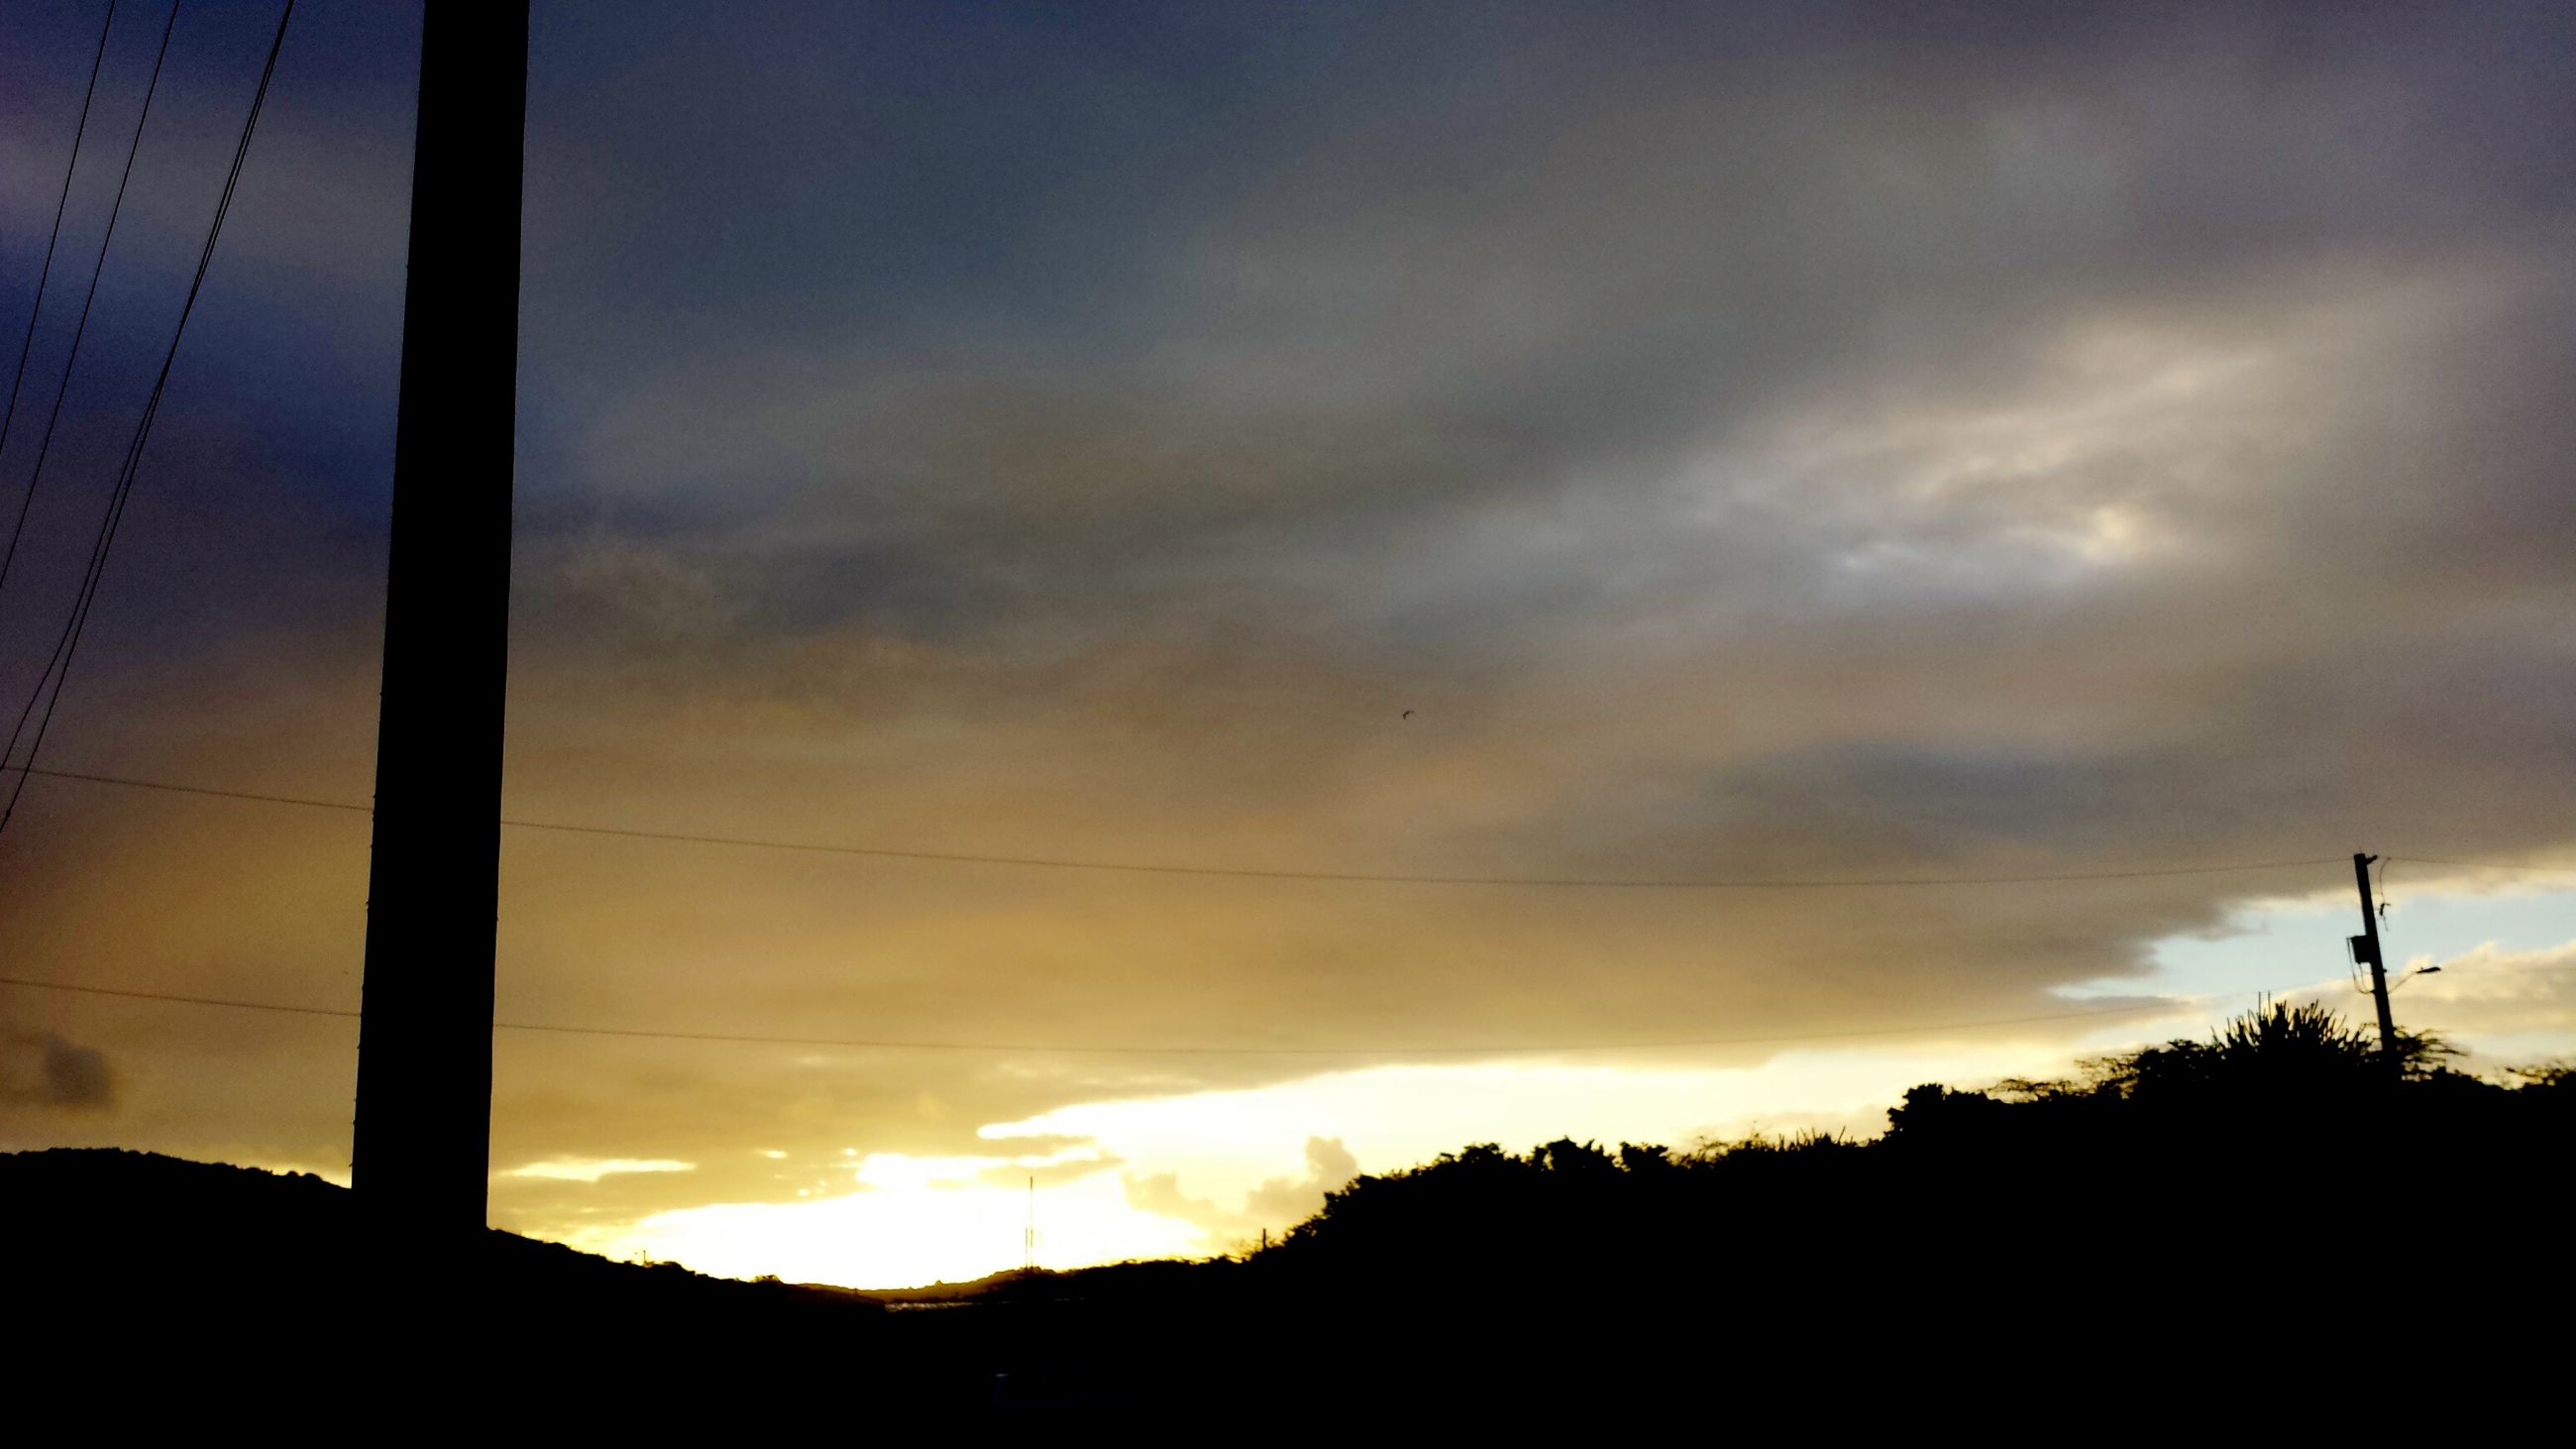 sunset, silhouette, sky, power line, electricity pylon, cloud - sky, low angle view, electricity, power supply, beauty in nature, scenics, tranquility, cloud, orange color, cable, nature, cloudy, tranquil scene, dramatic sky, connection